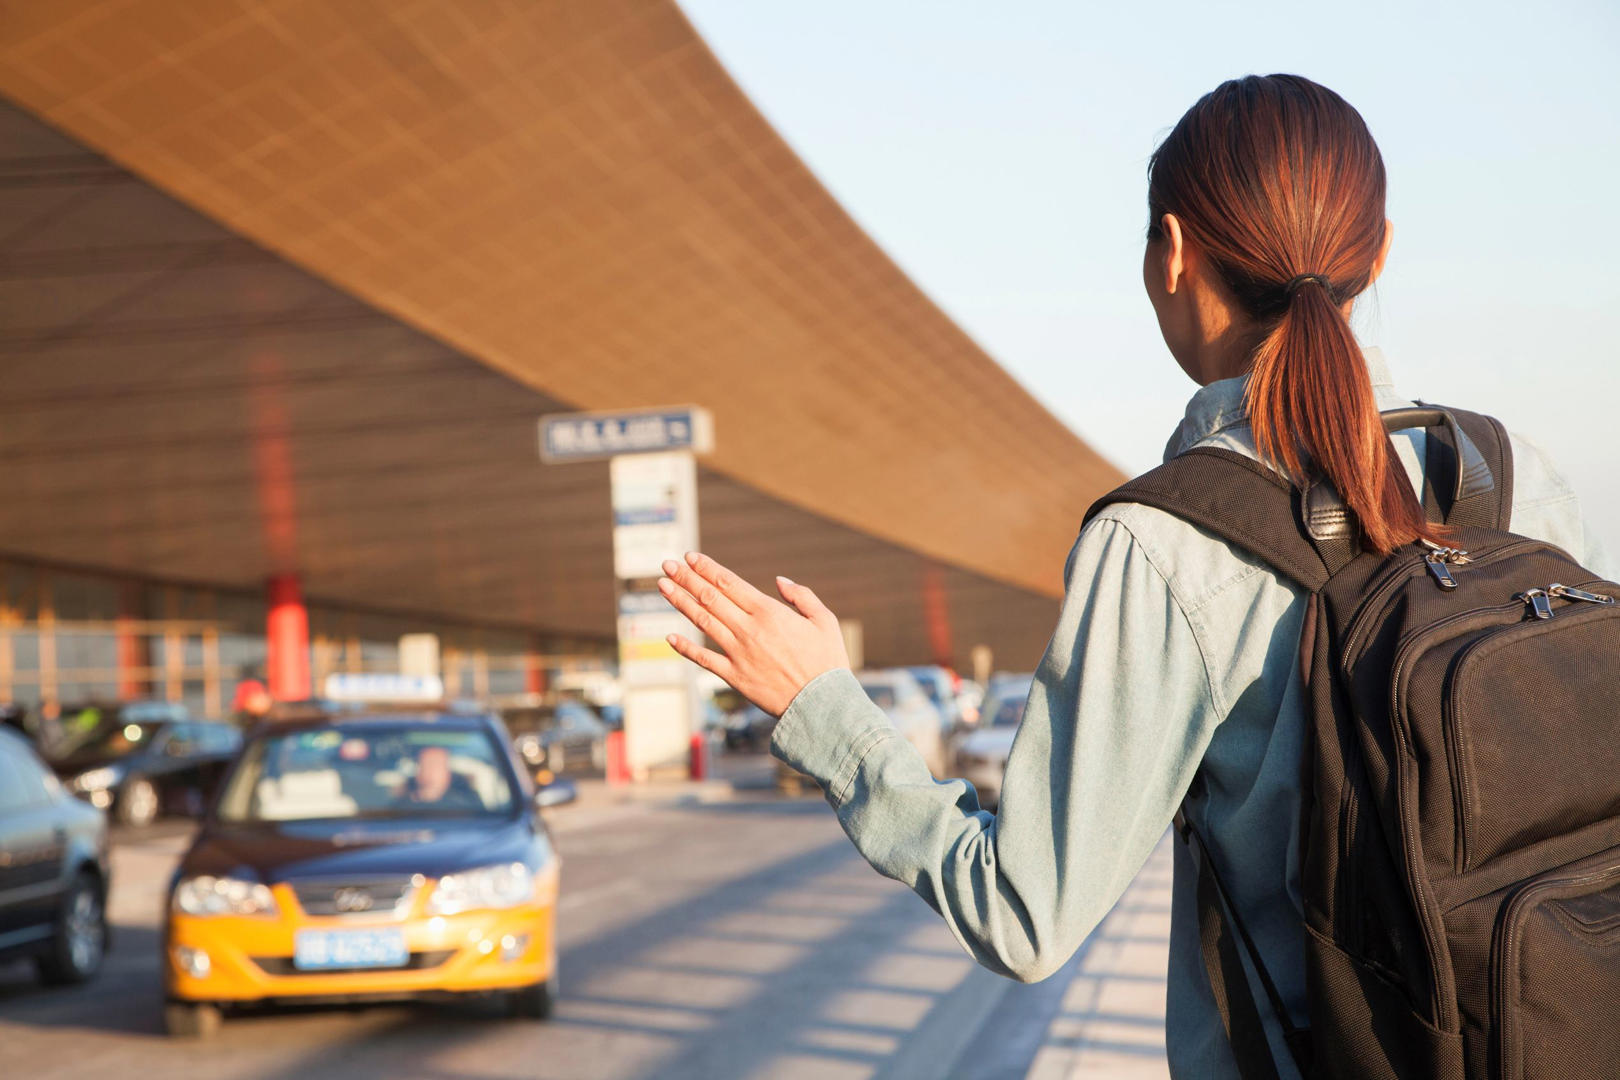 Slide 3 of 9: Young woman getting a taxi in an airport